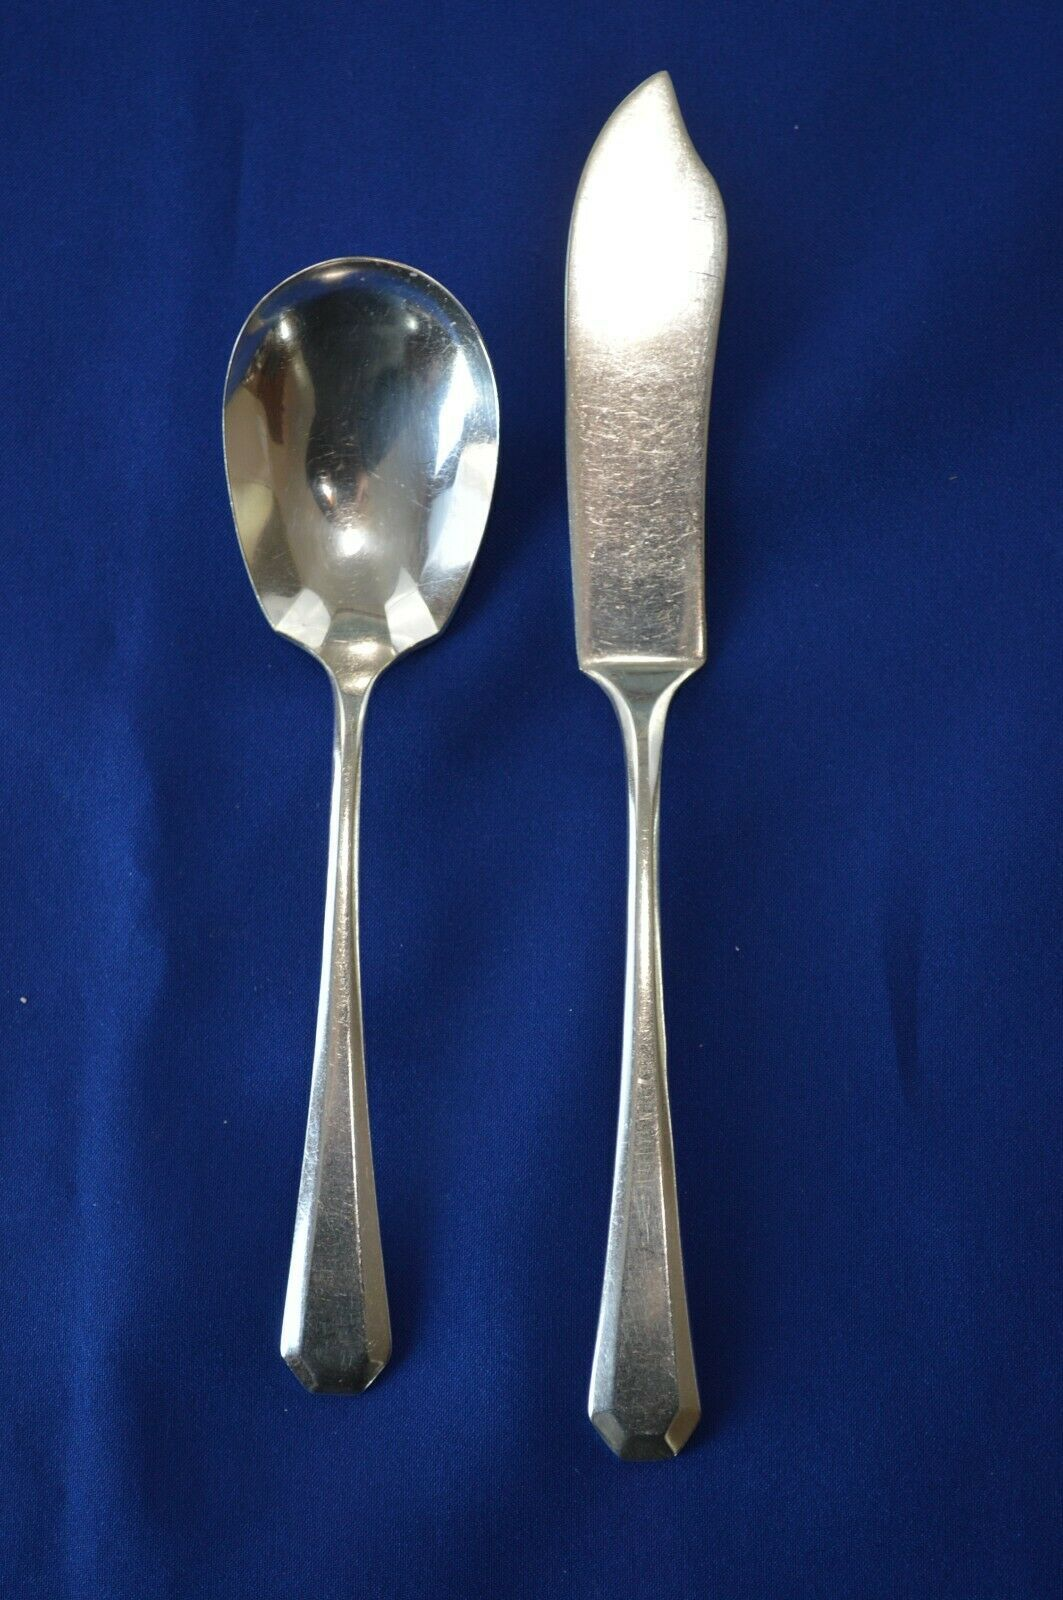 Primary image for Wm Rogers MFG Co Lincoln 1917 Master Butter Knife & Sugar Spoon